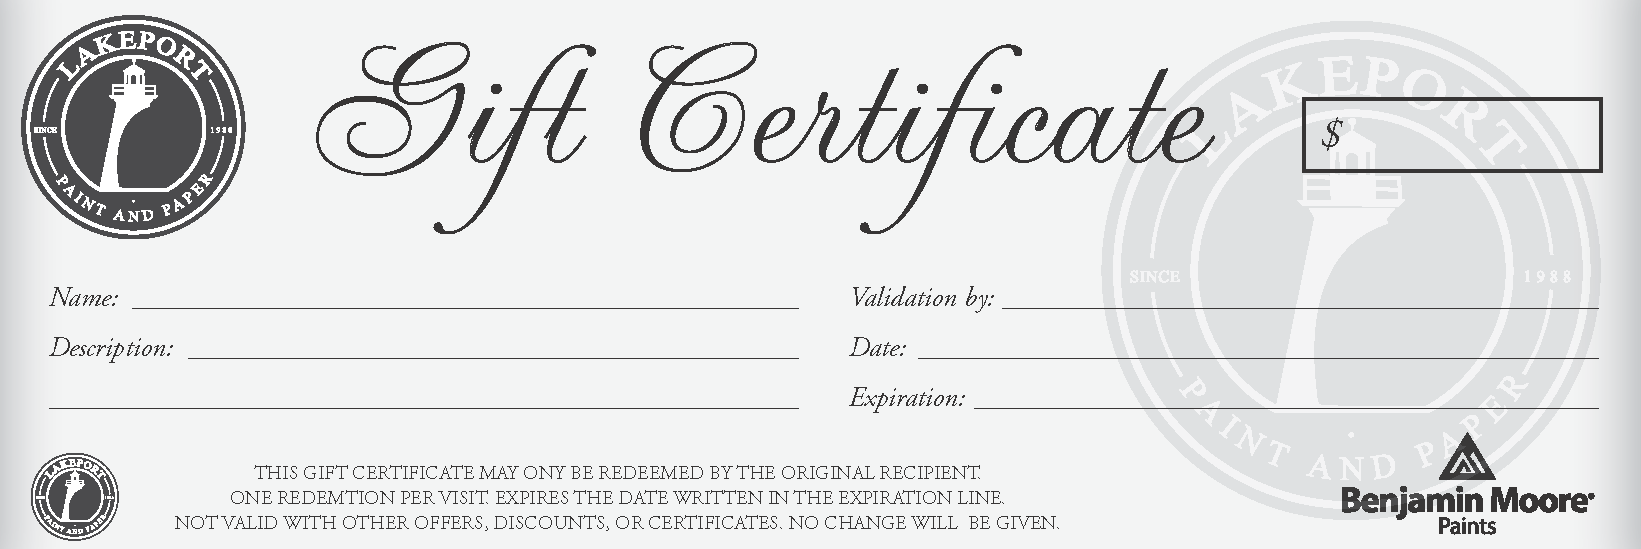 LAKEPORT PAINT GIFT CERTIFICATE